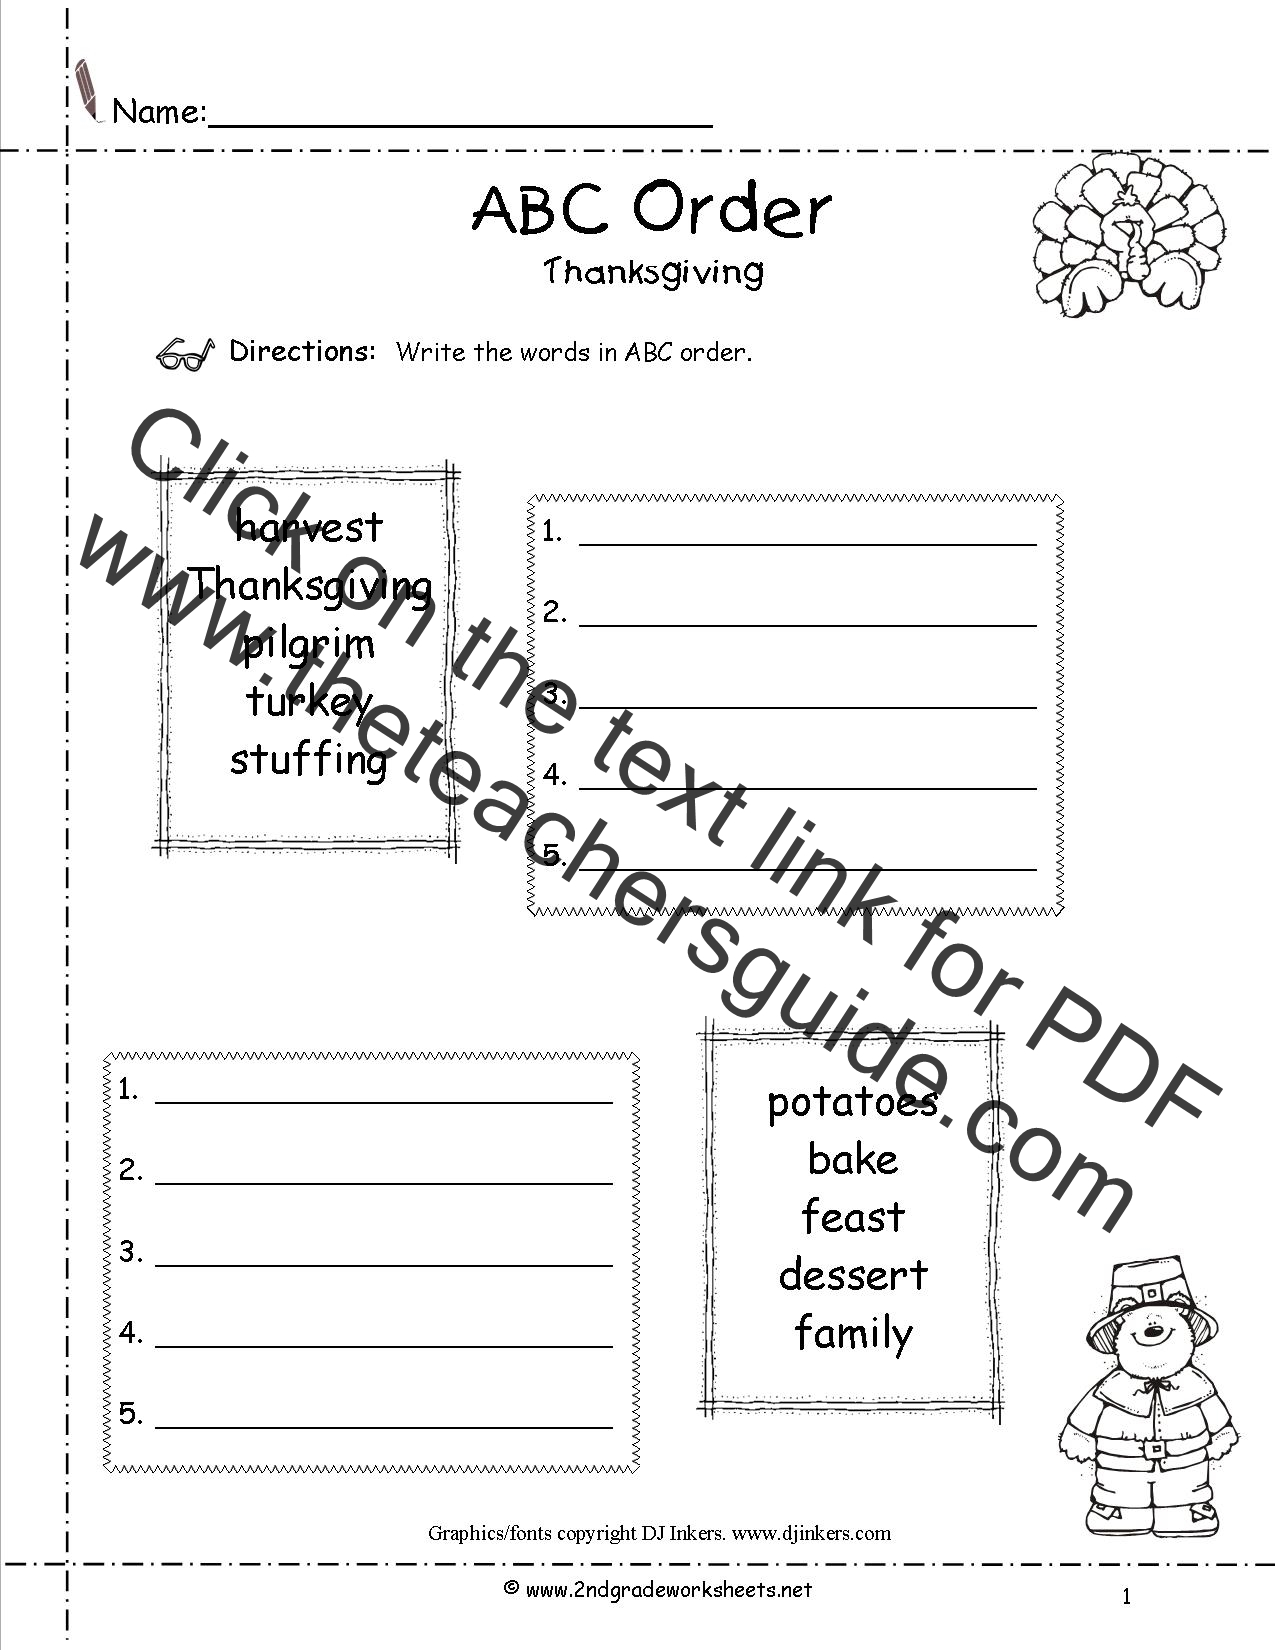 Worksheets Alphabetical Order Worksheets printouts and worksheets thanksgiving abc order worksheet